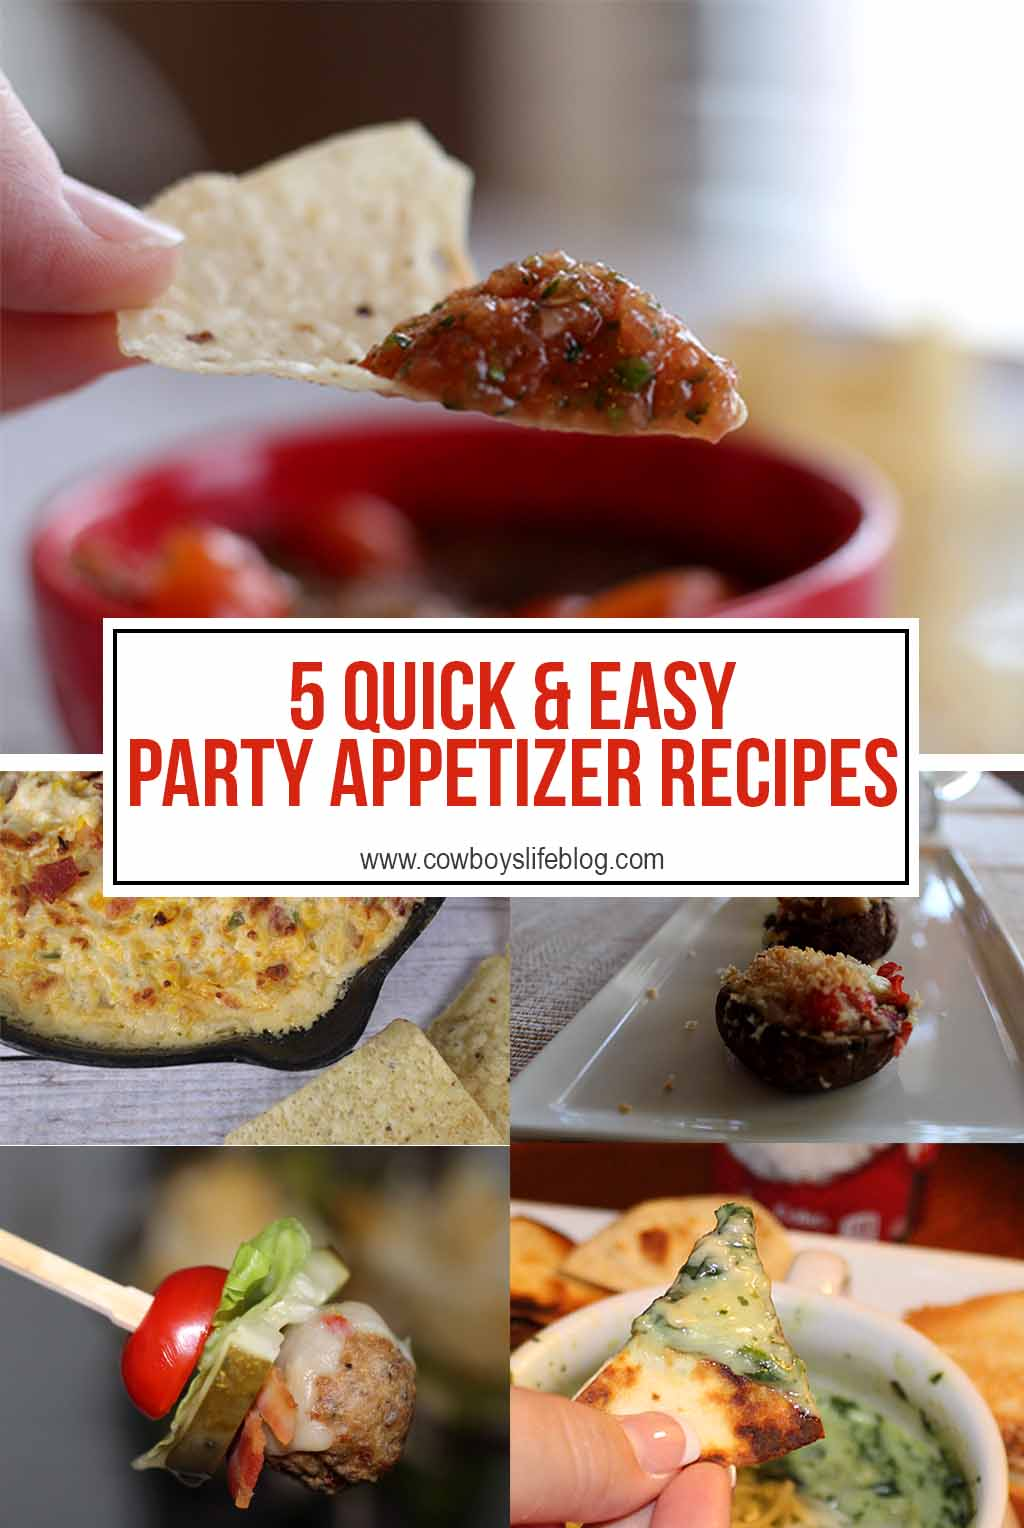 5 Quick & Easy Party Appetizer Recipes